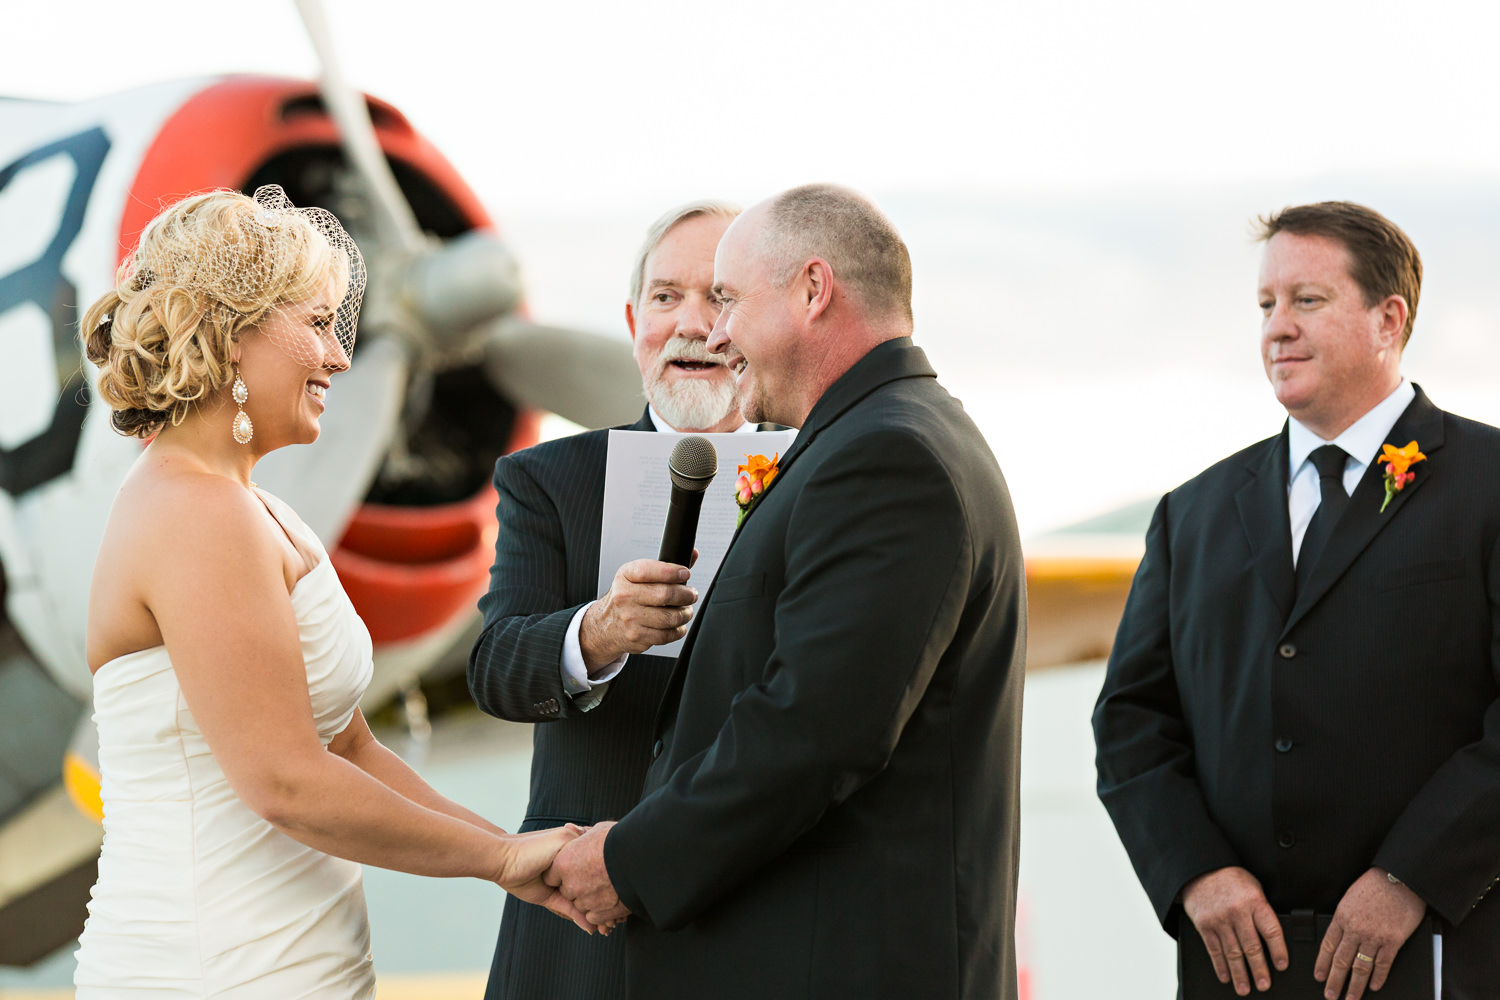 missoula-museum-mountain-flying-wedding-couple-laughs-exchanging-vows.jpg